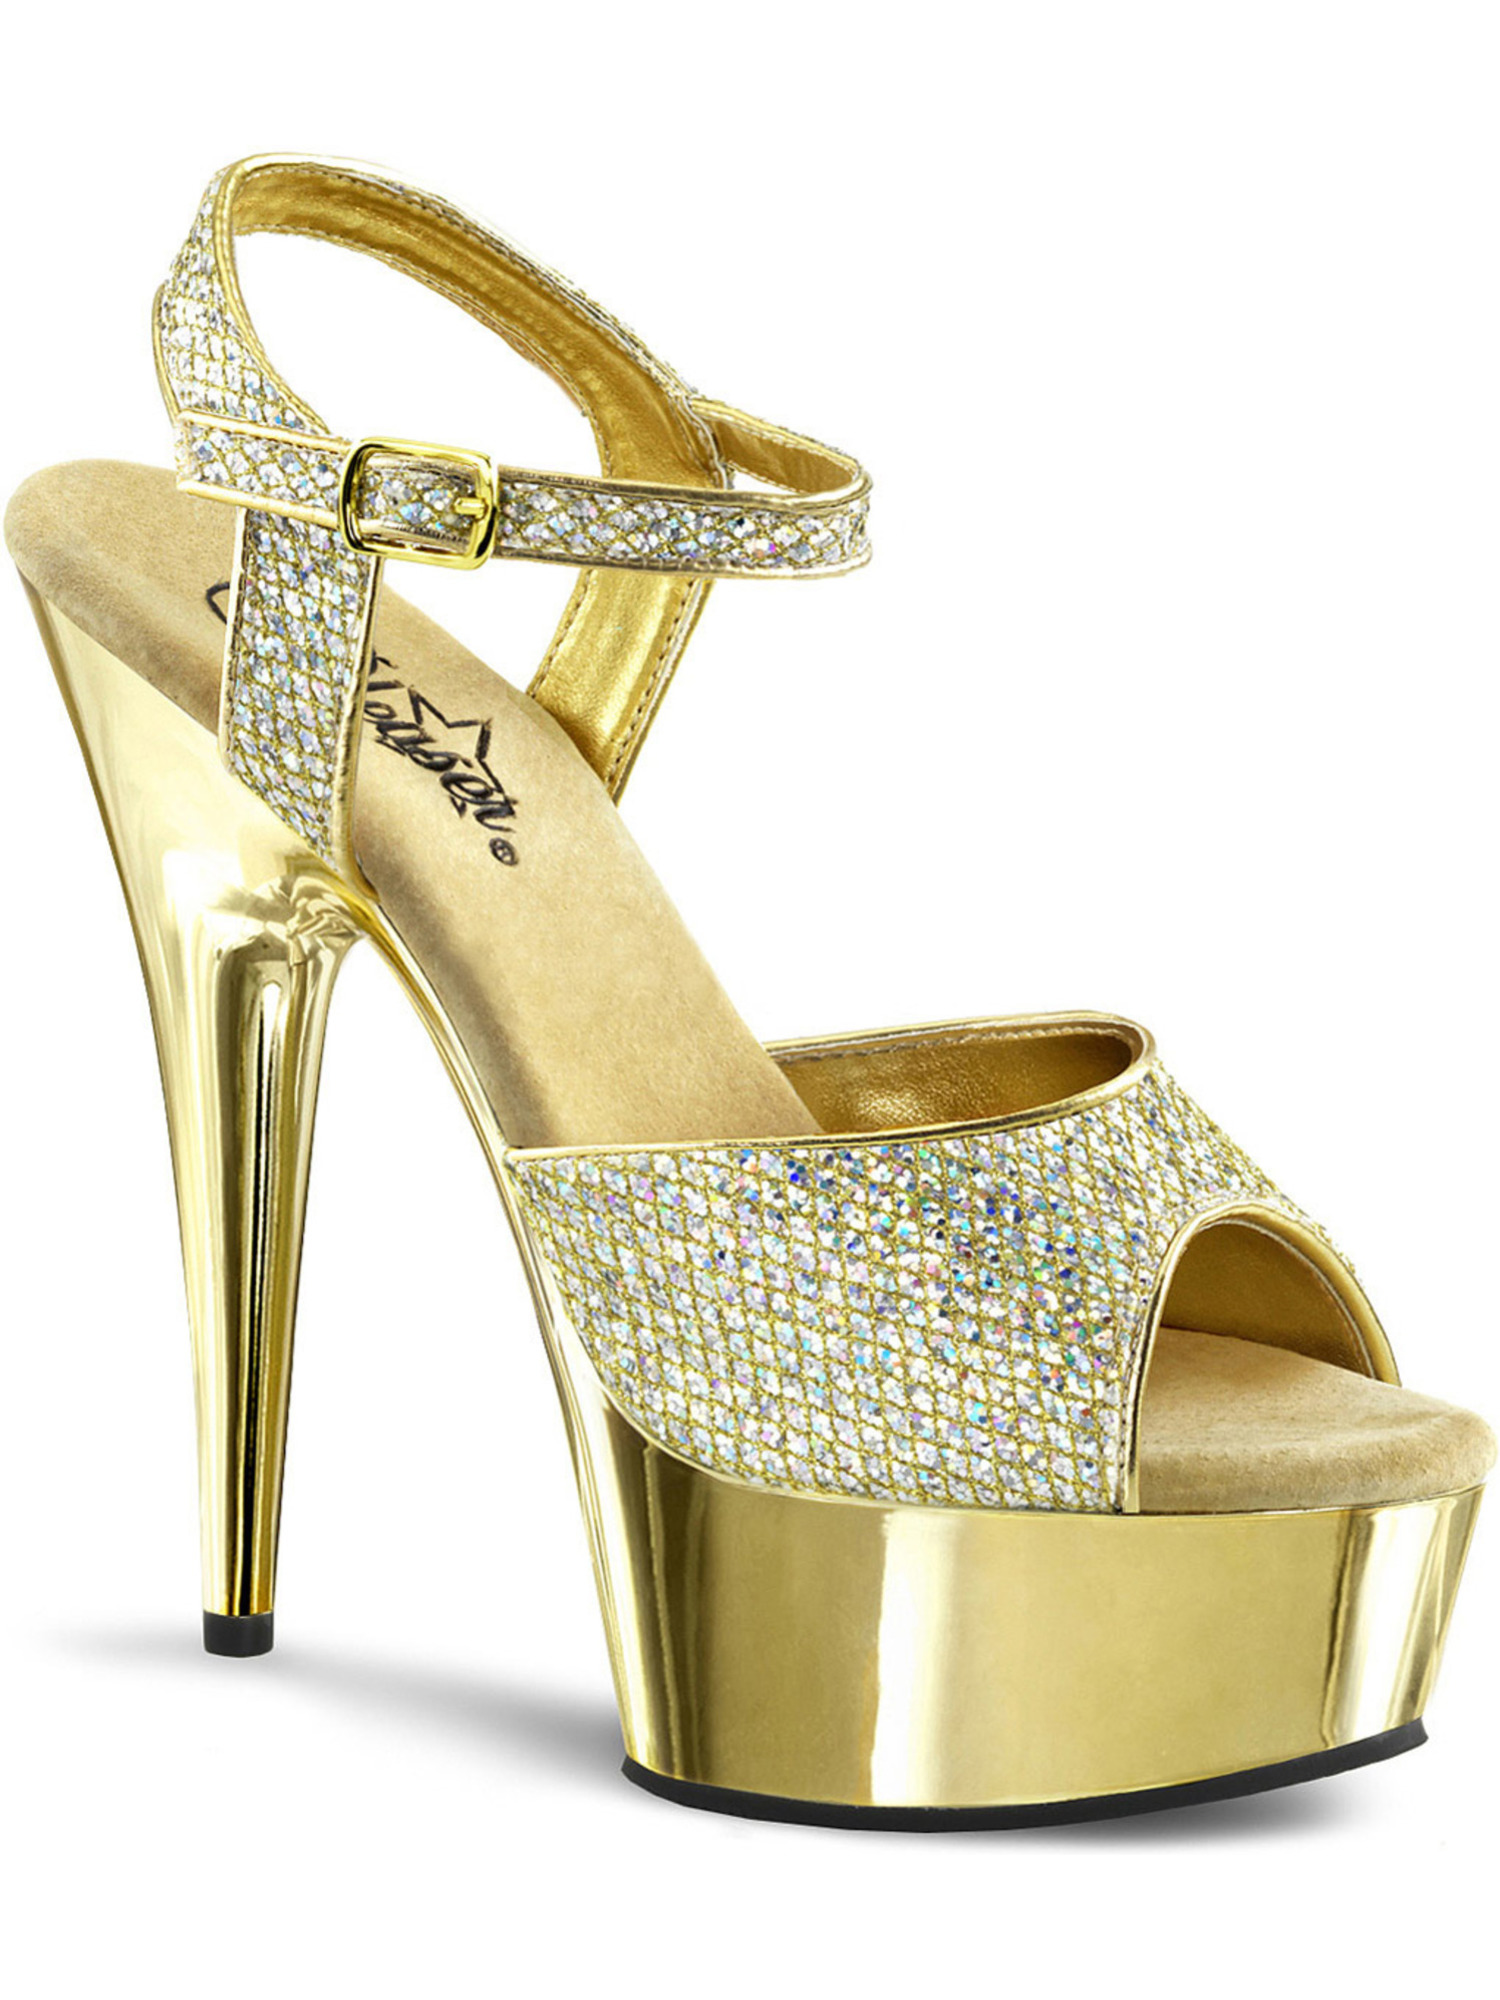 Womens Gorgeous 6'' Gold Glitter Platform Heels Dress Shoes with Ankle Strap